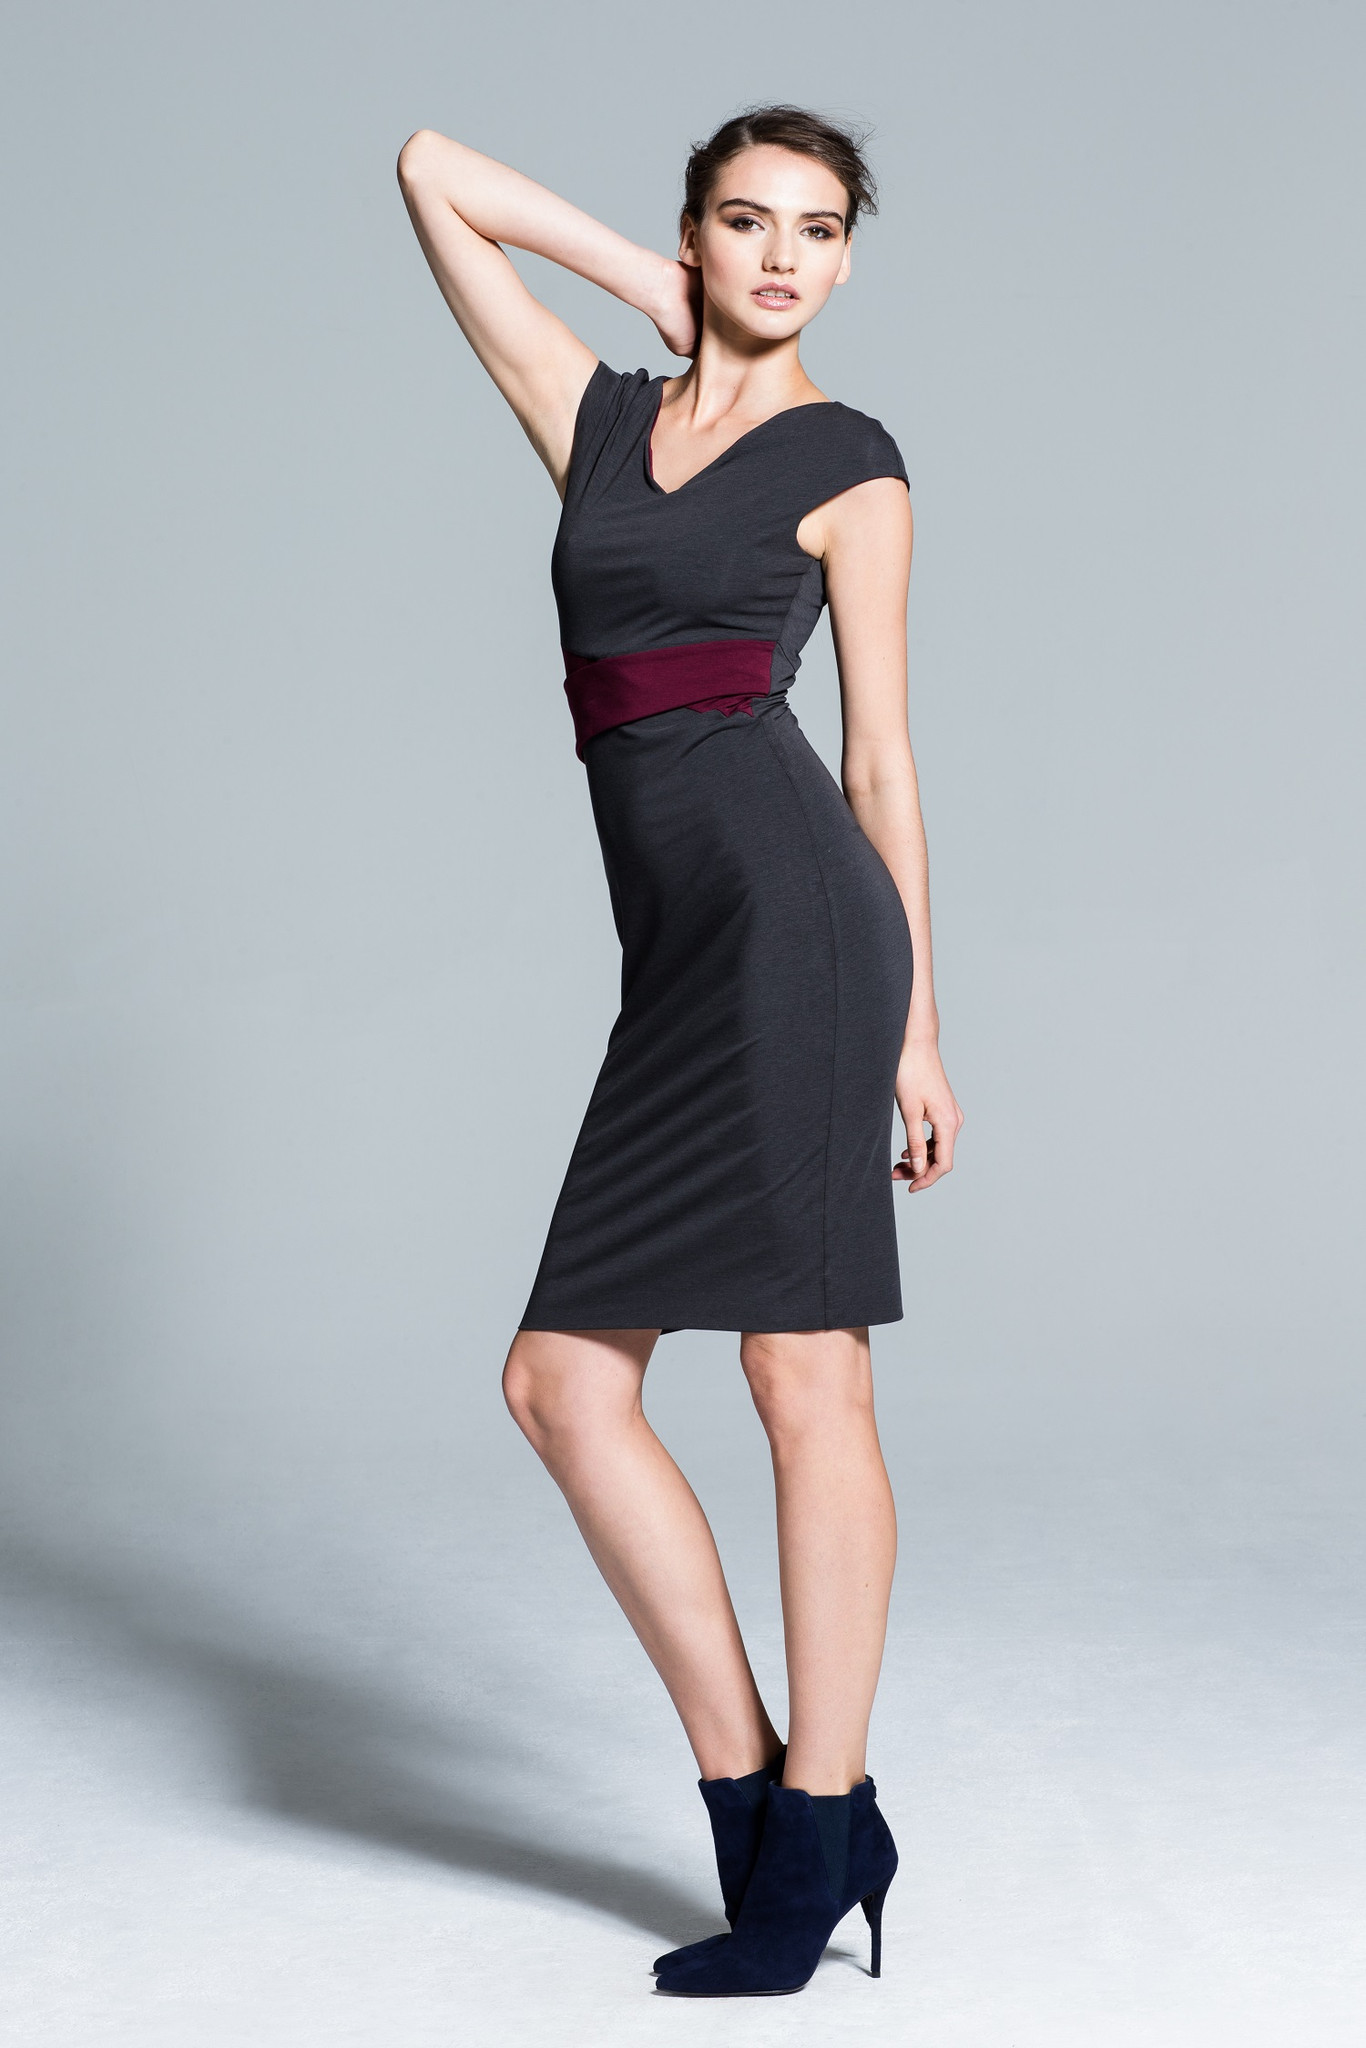 wabi sabi eco fashion concept passion for Wabi sabi eco fashion concept designs day to evening office appropriate eco- friendly work dresses that empower women to live healthier and happier.